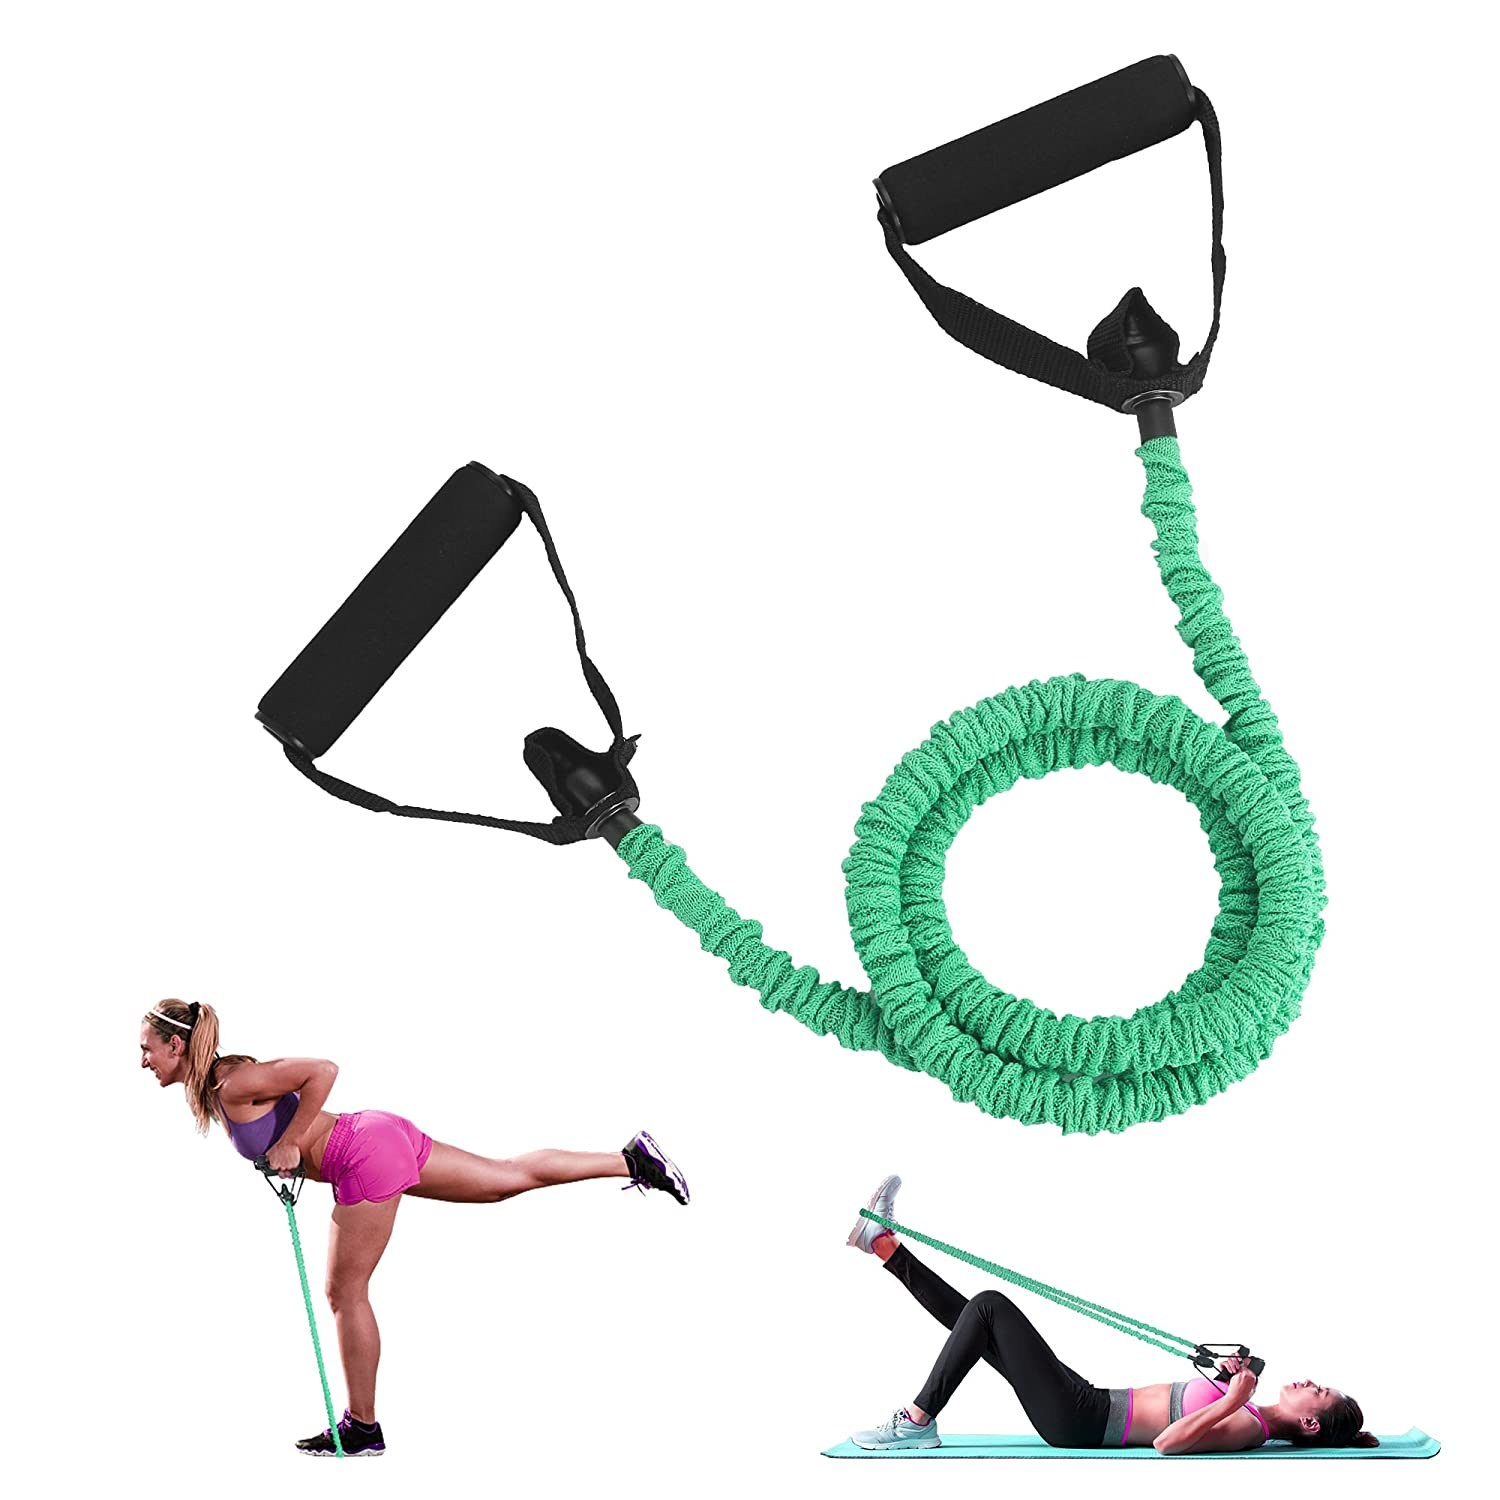 CMXING Resistance Exercise Bands with Handles 2018 New Version More safty Elastic Stretch Tubes Cords For Fitness Workout Training Home Use Men Women( 1pcs not 4)